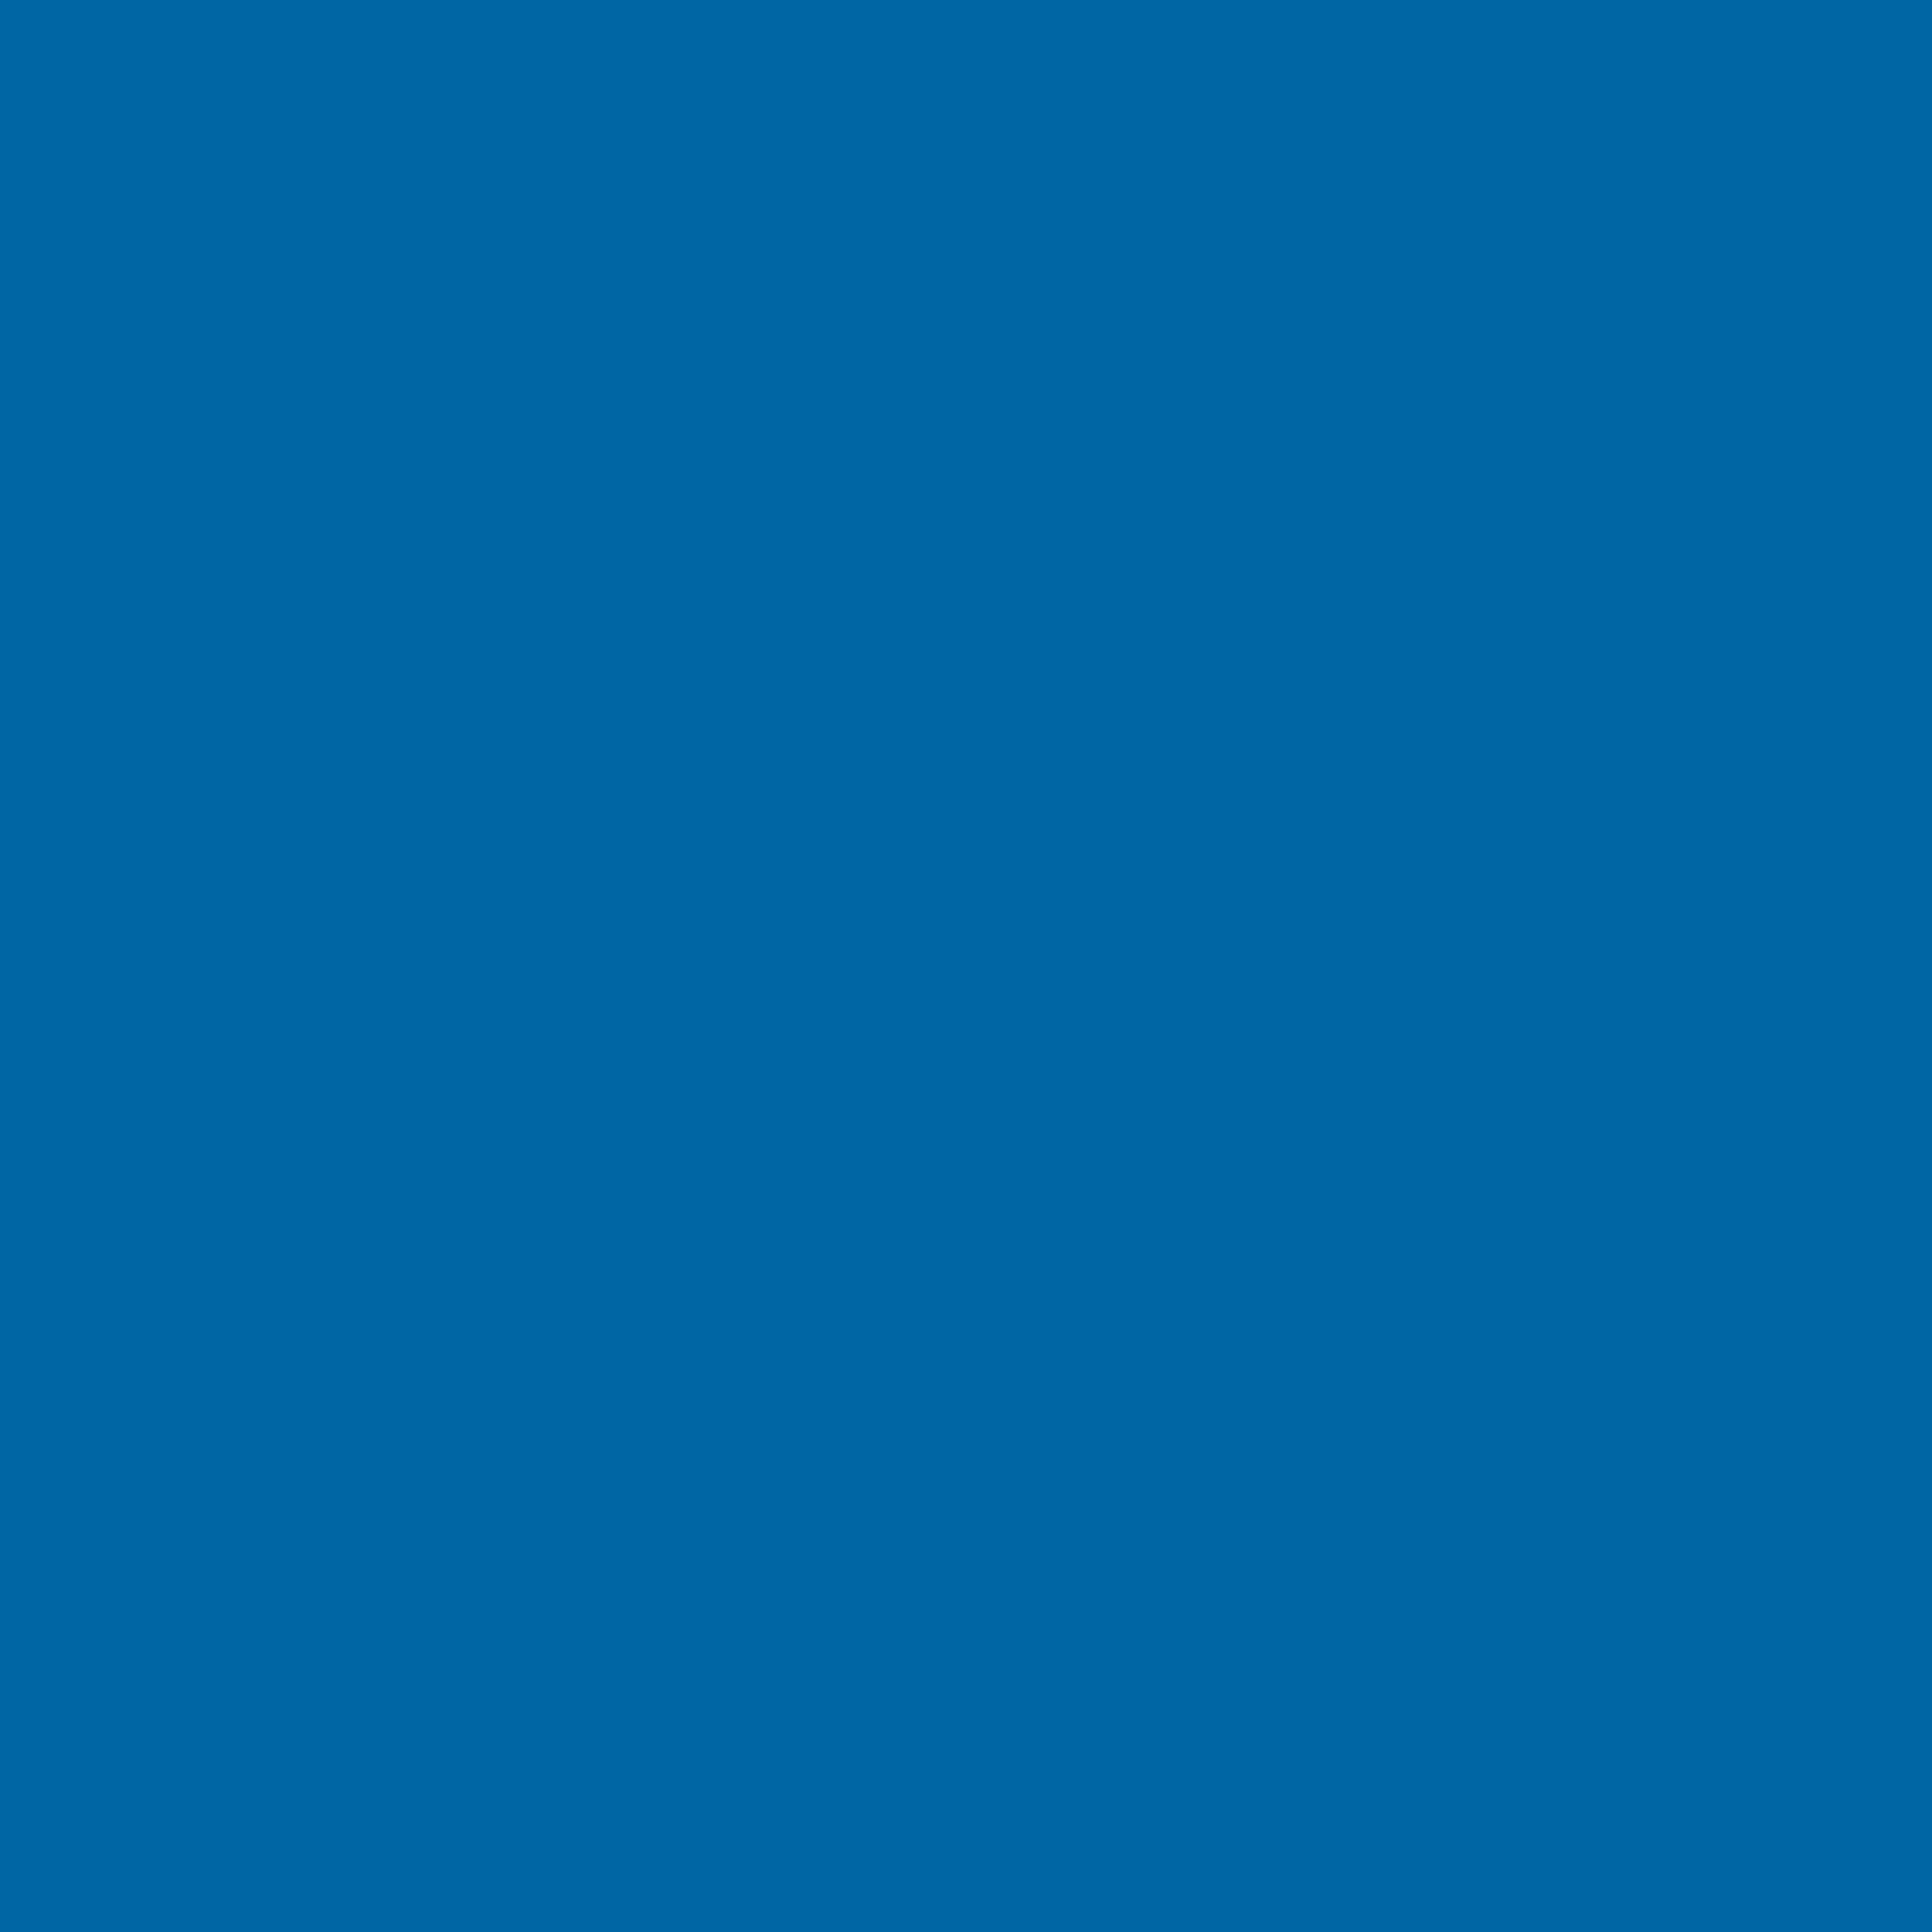 3600x3600 Medium Persian Blue Solid Color Background